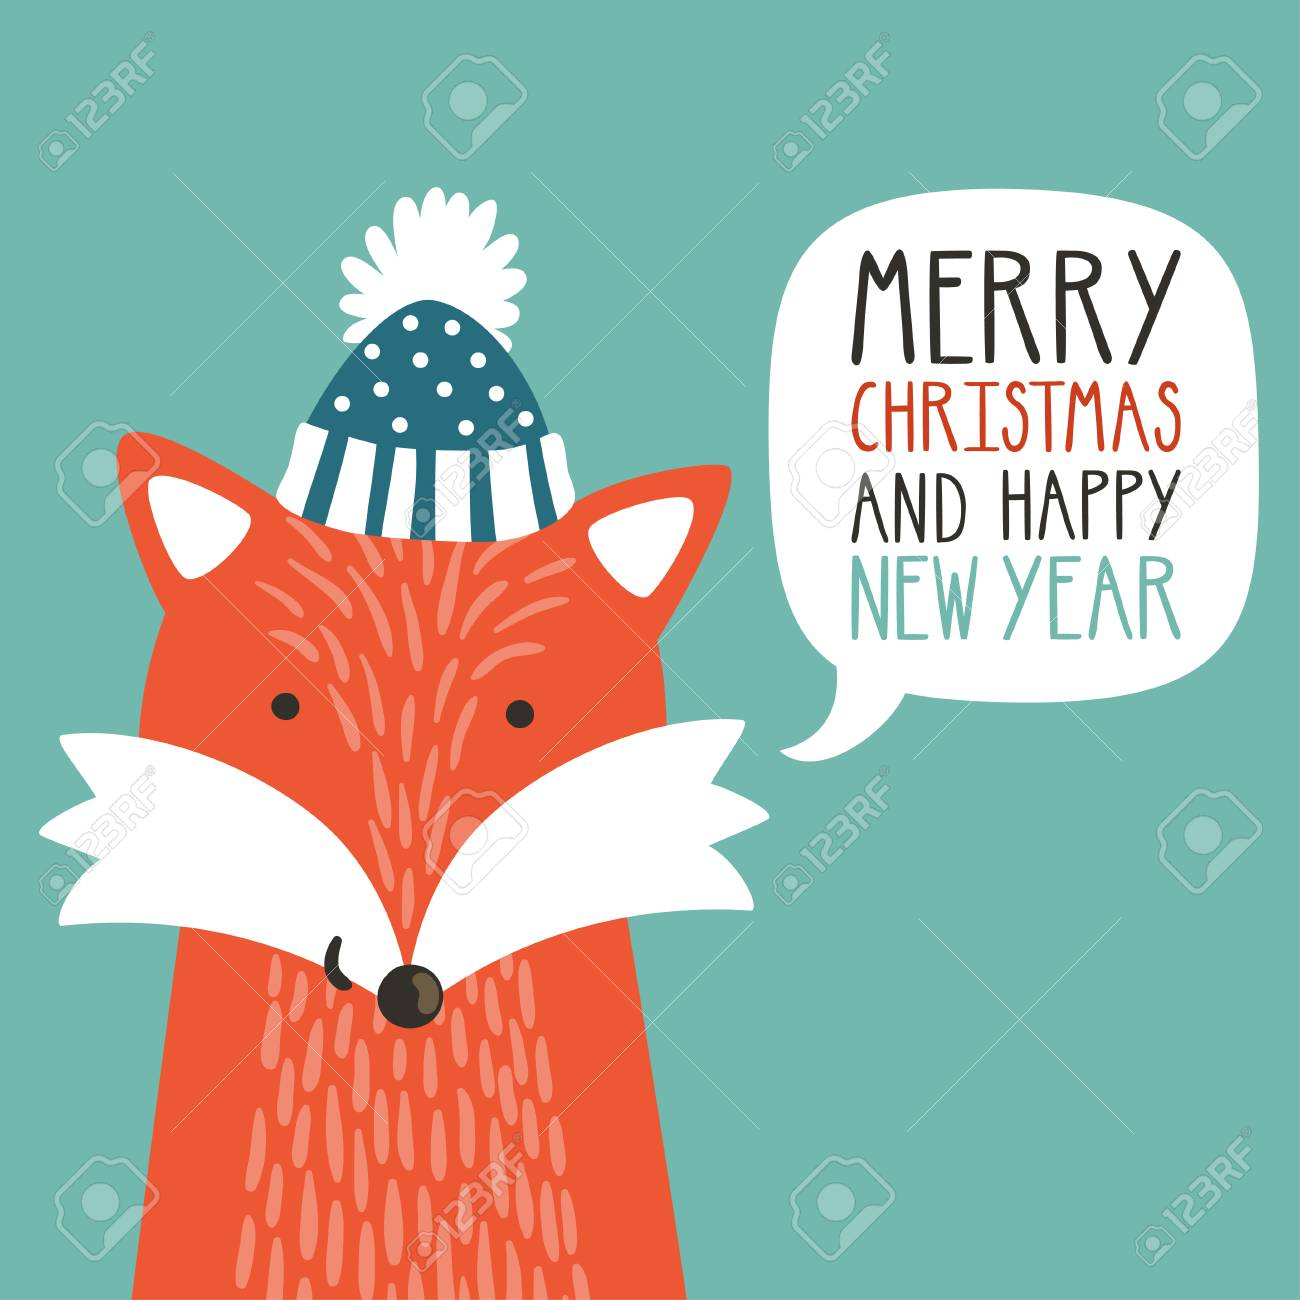 vector vector holiday illustration of a cute fox in a hat saying merry christmas and happy new year